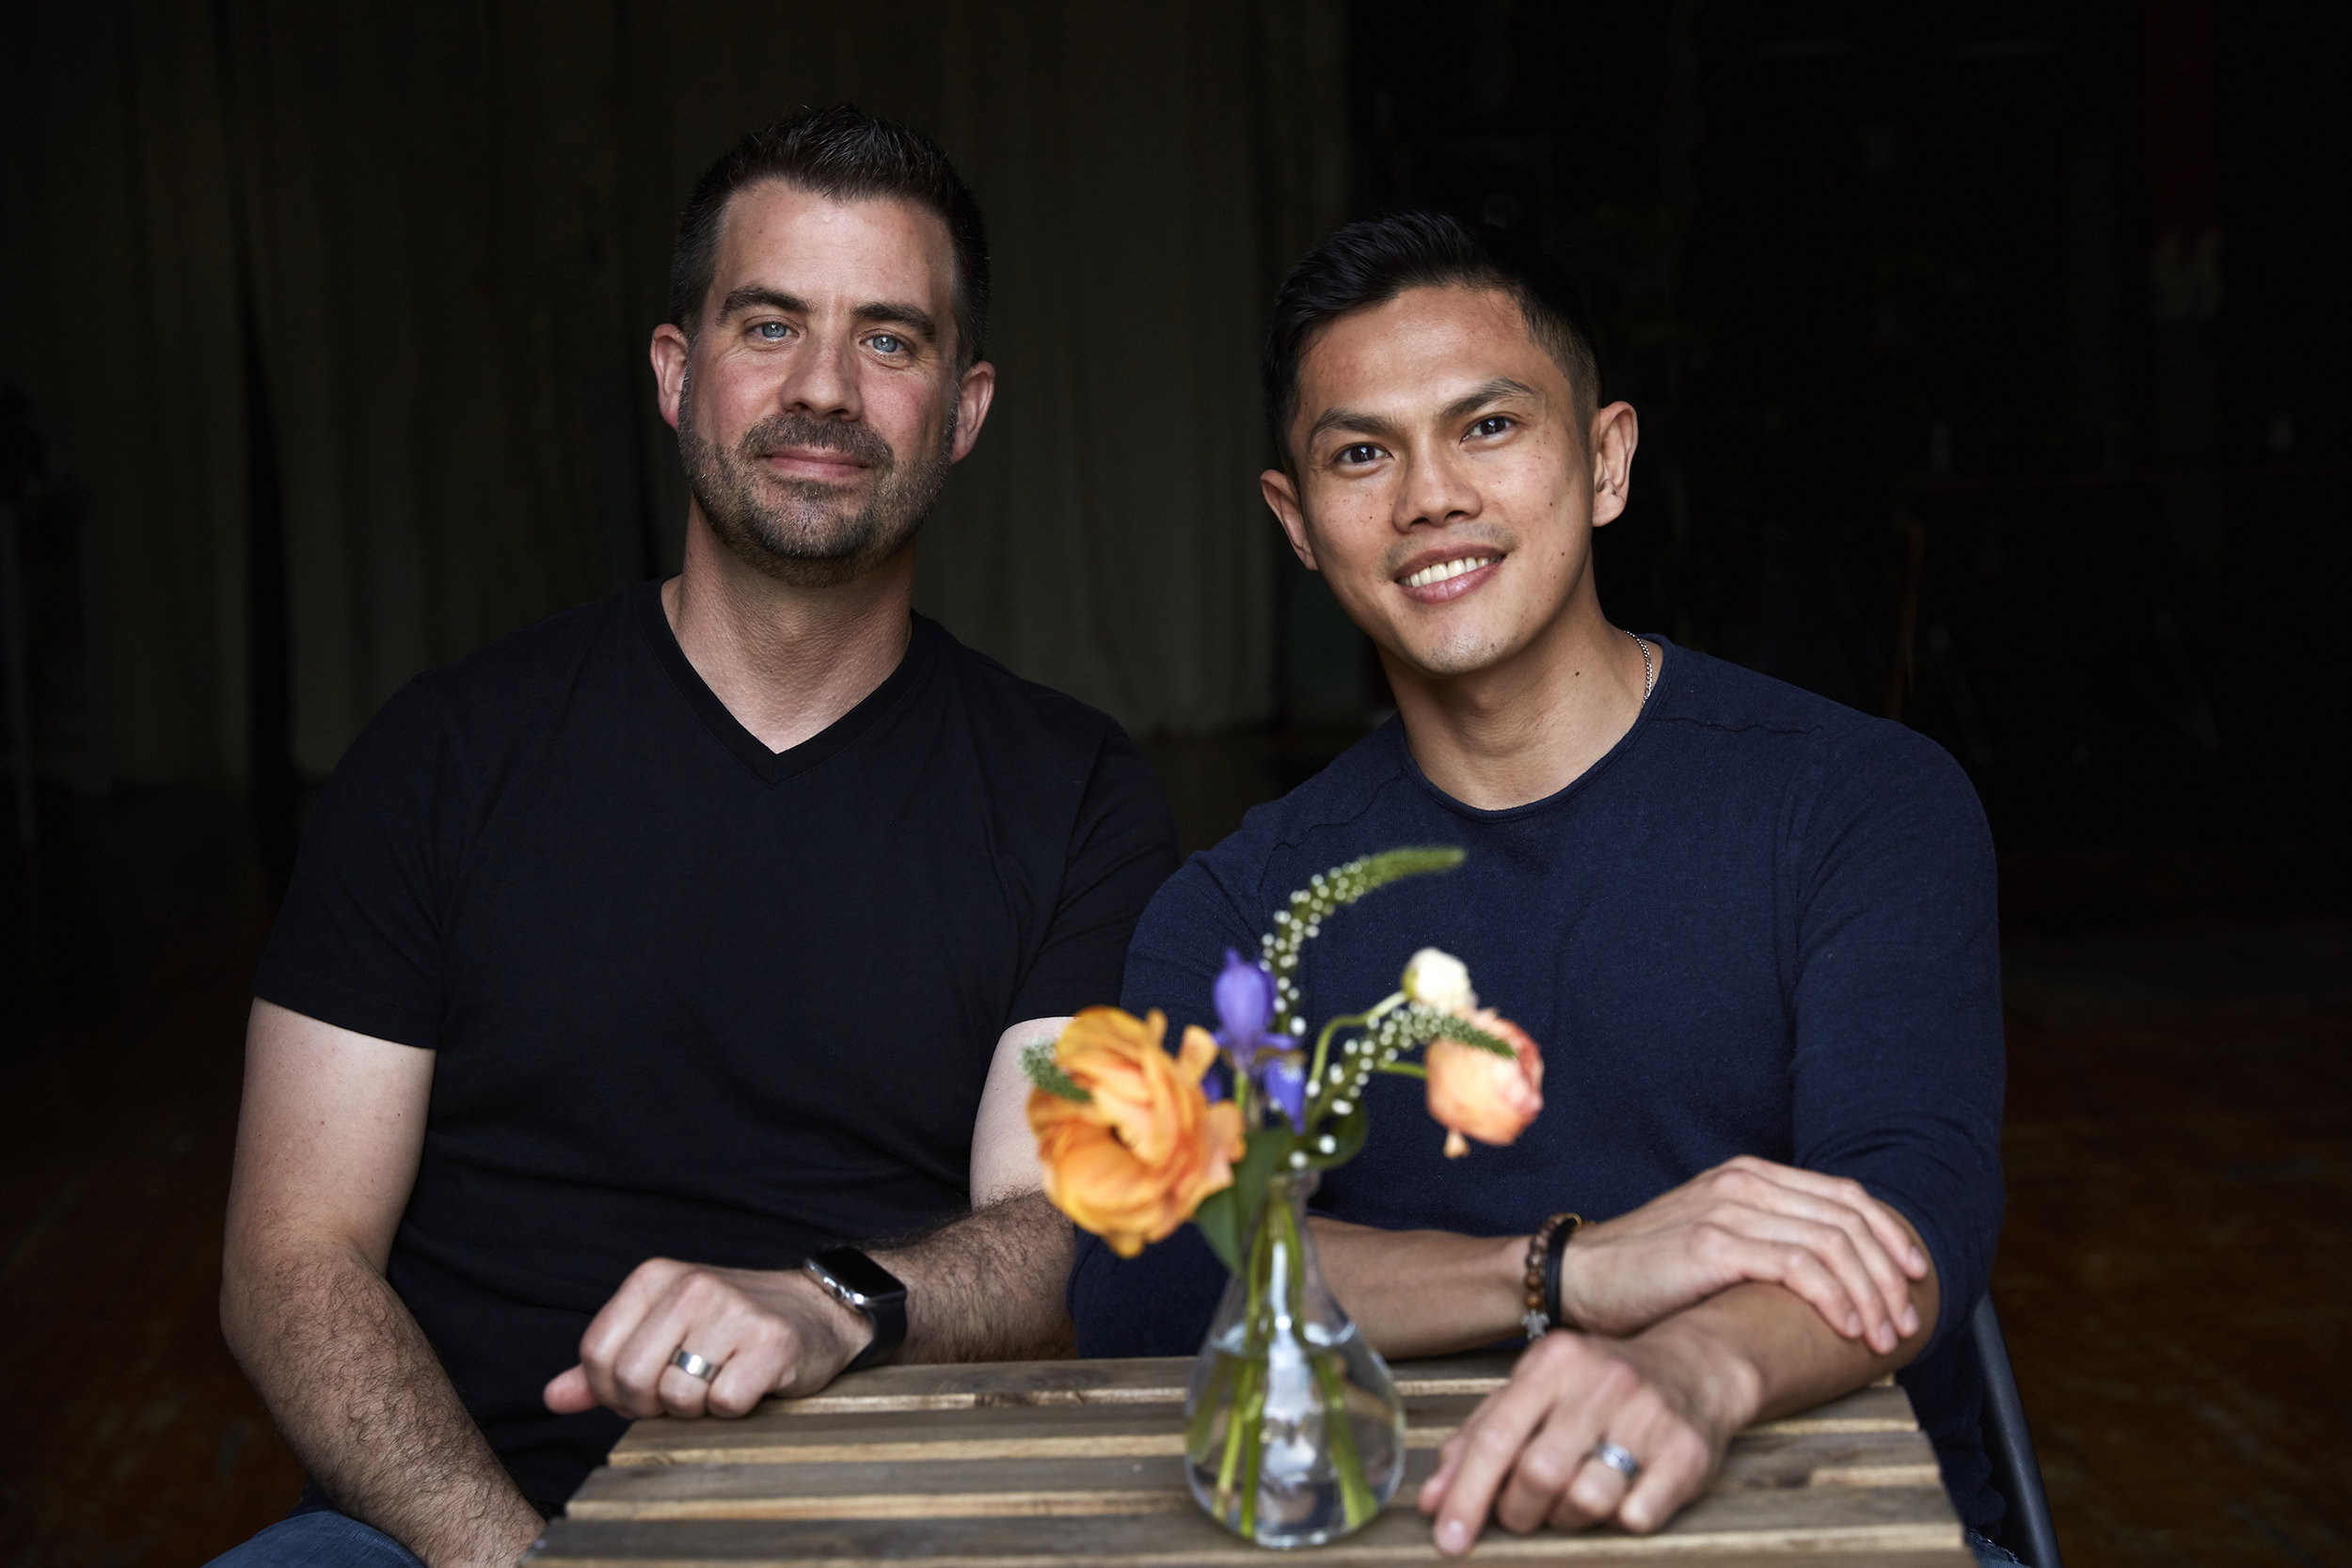 Jeff and Jeff create all natural, handmade soy candles and fragrances